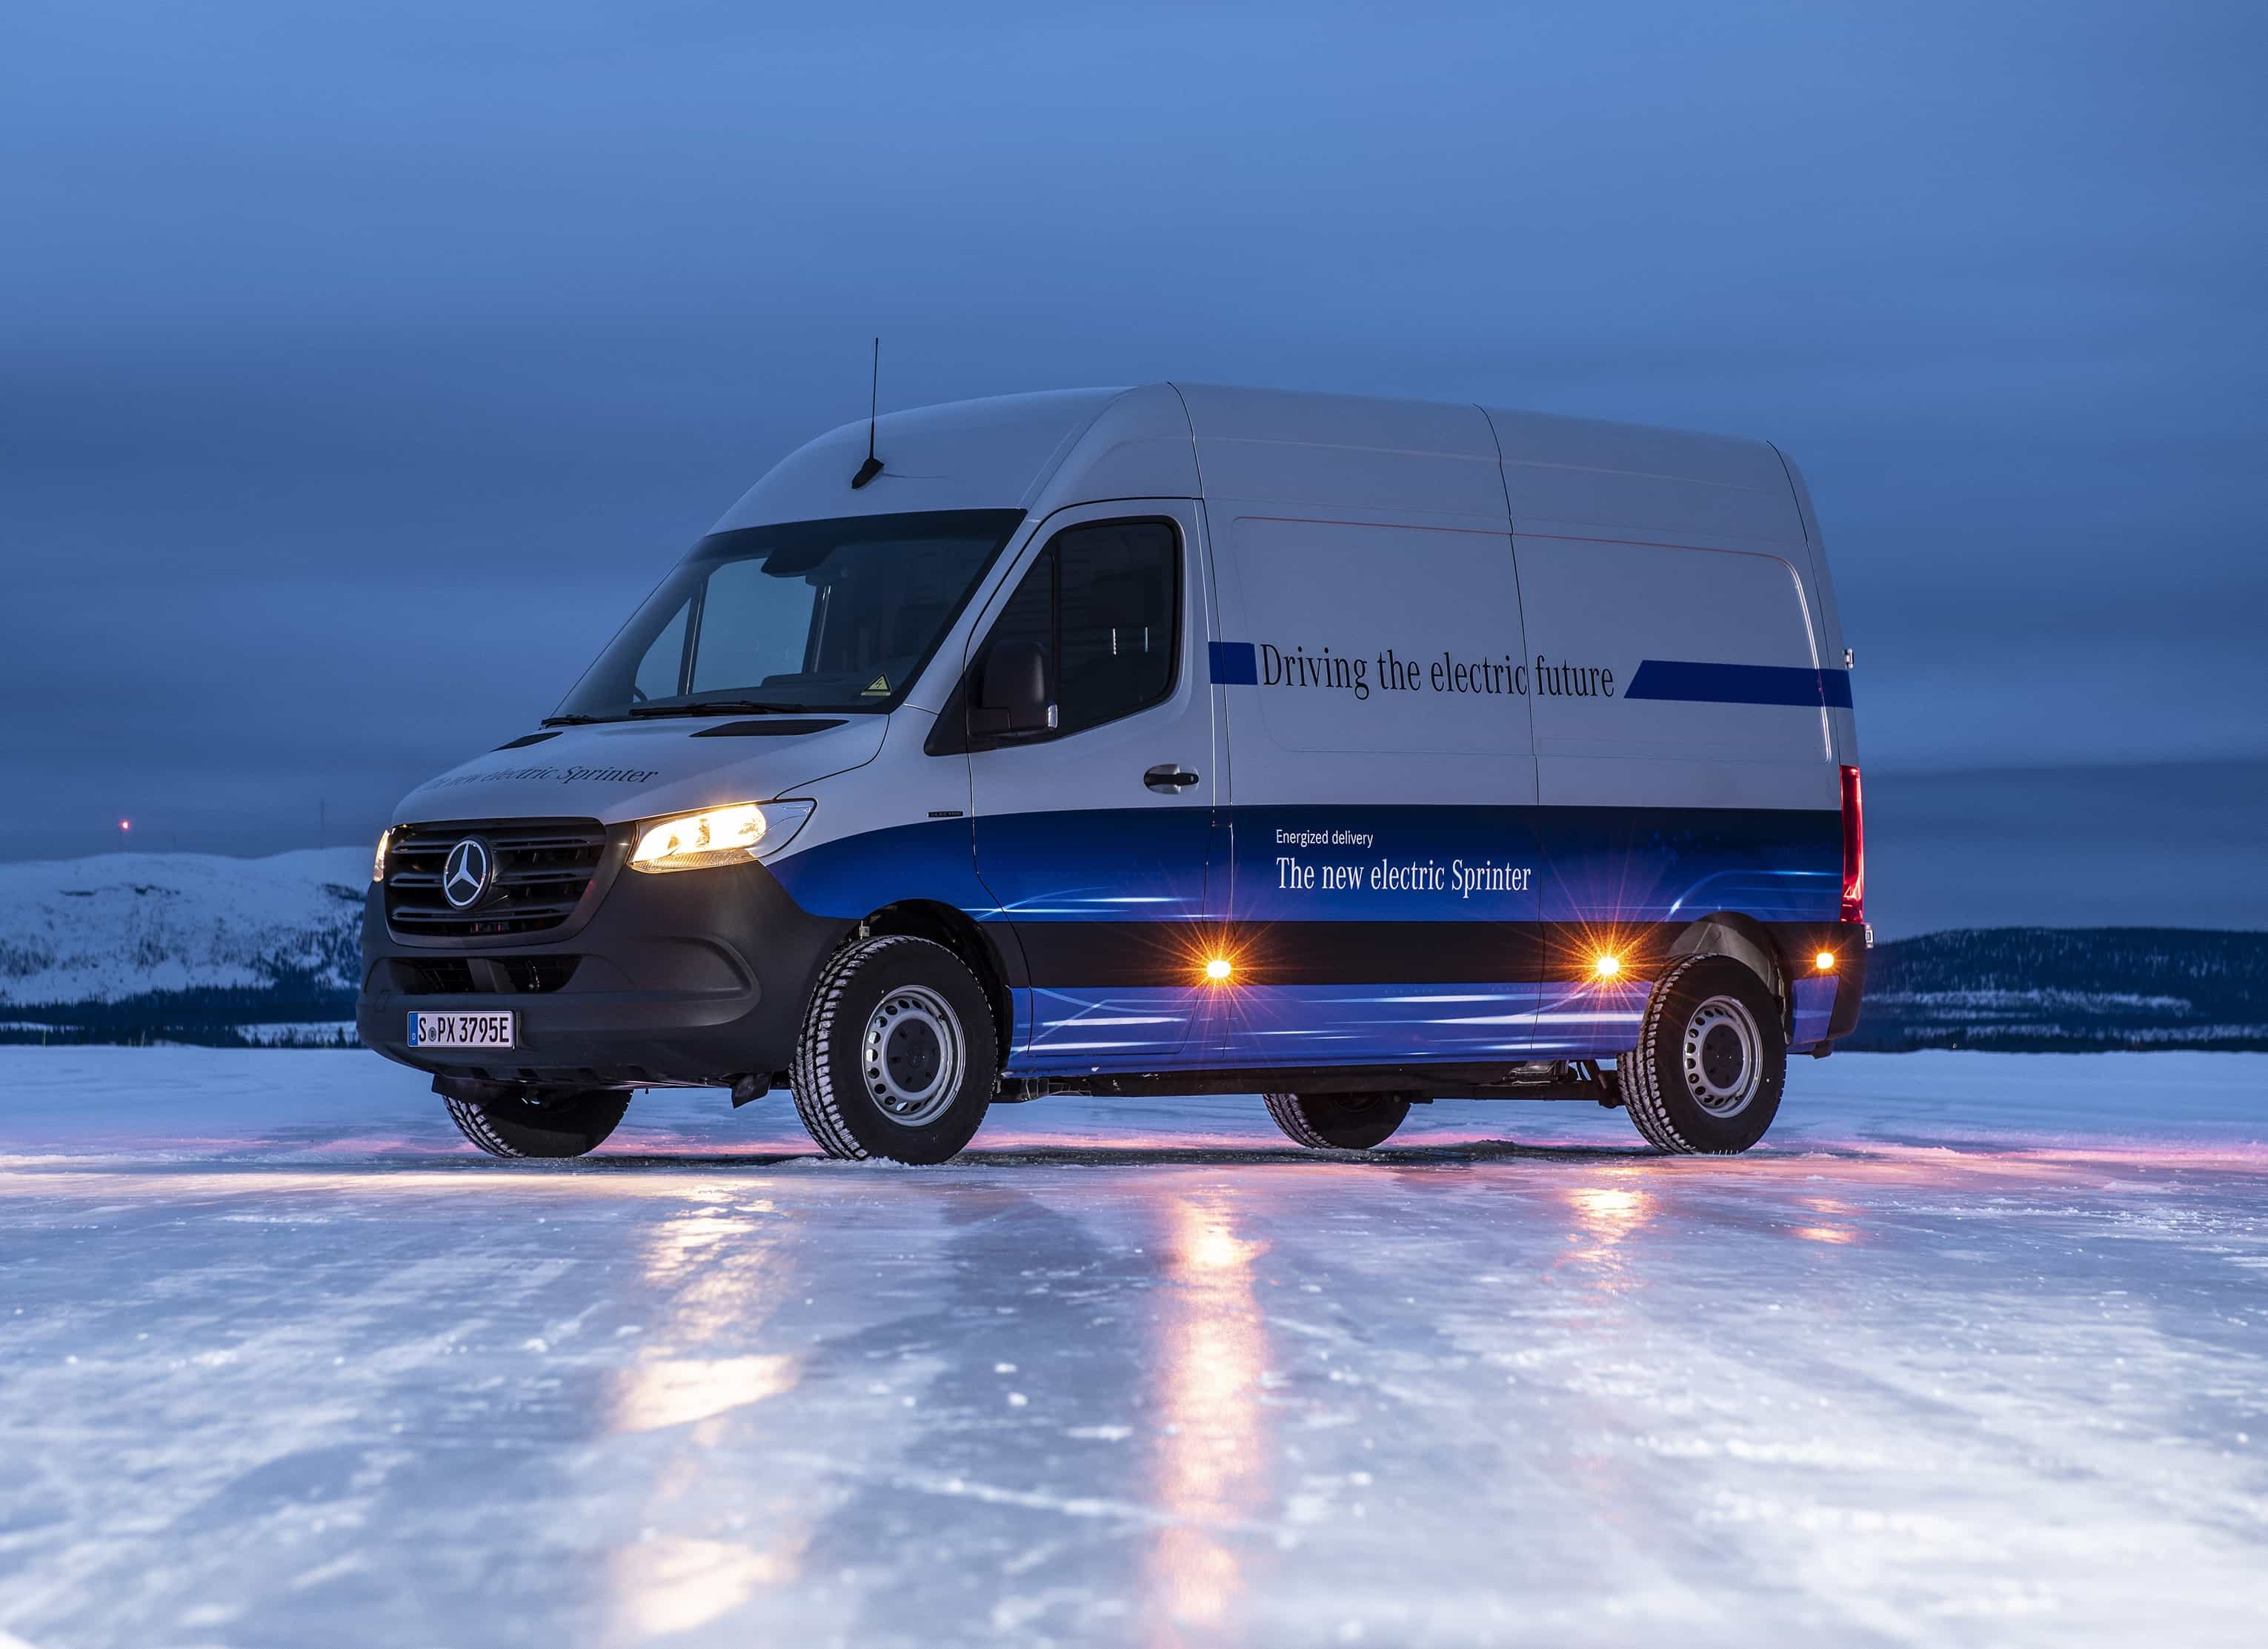 Wintererprobung Mercedes-Benz eSprinter in Schweden  Winter trials Mercedes-Benz eSprinter in Sweden